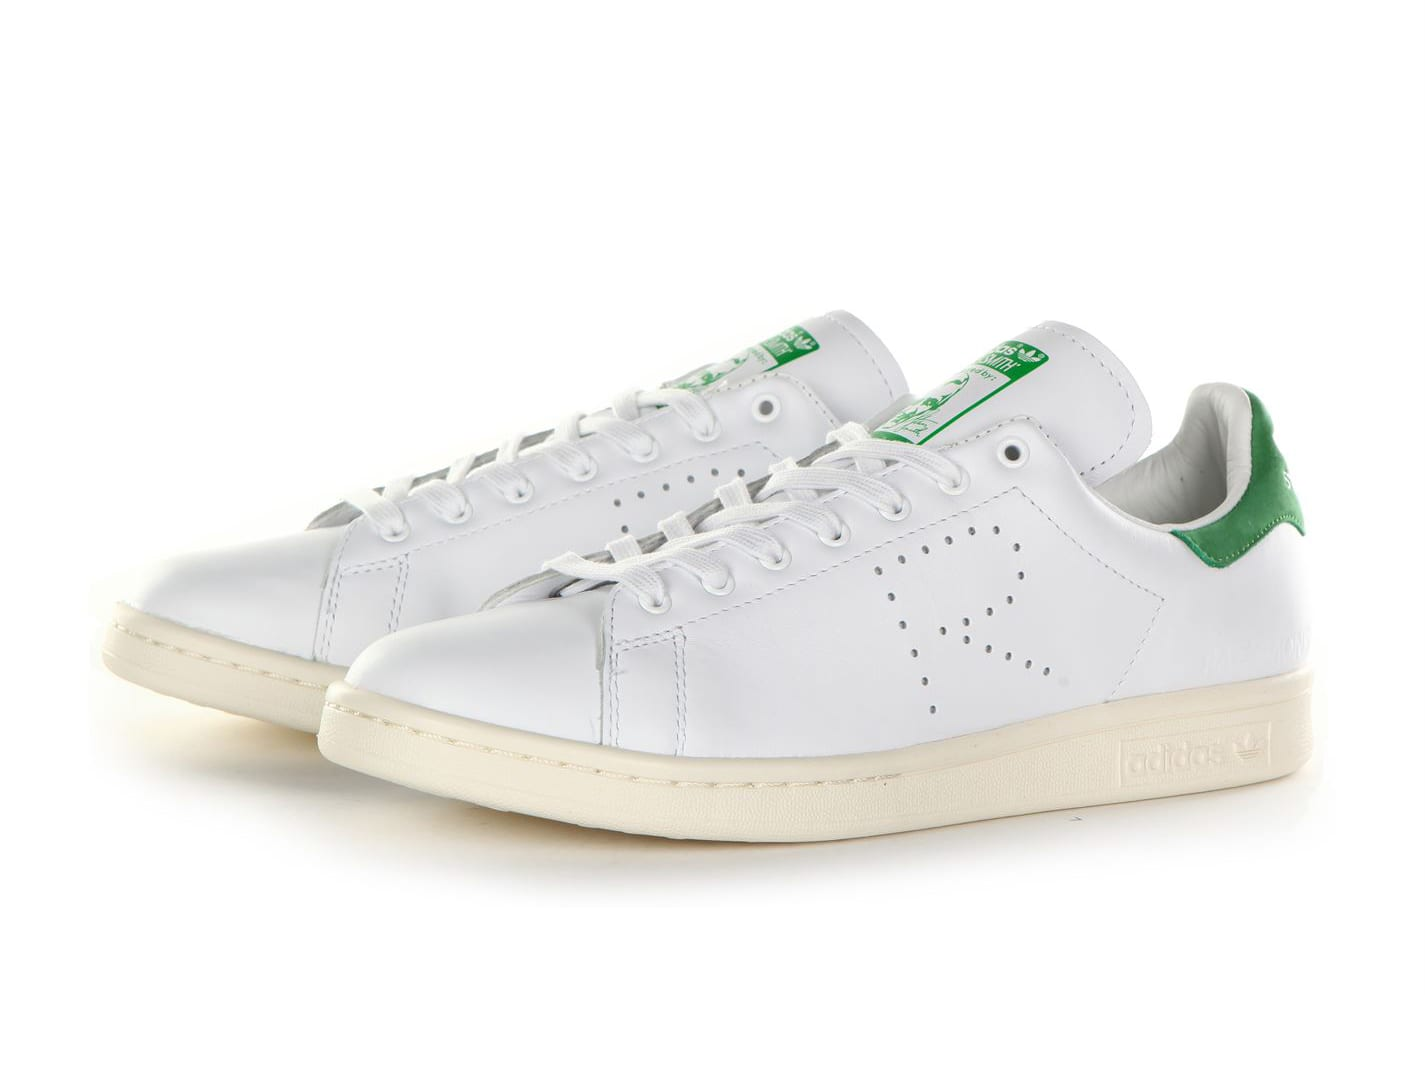 Adidas Originals x Raf Simons - White Stan Smiths